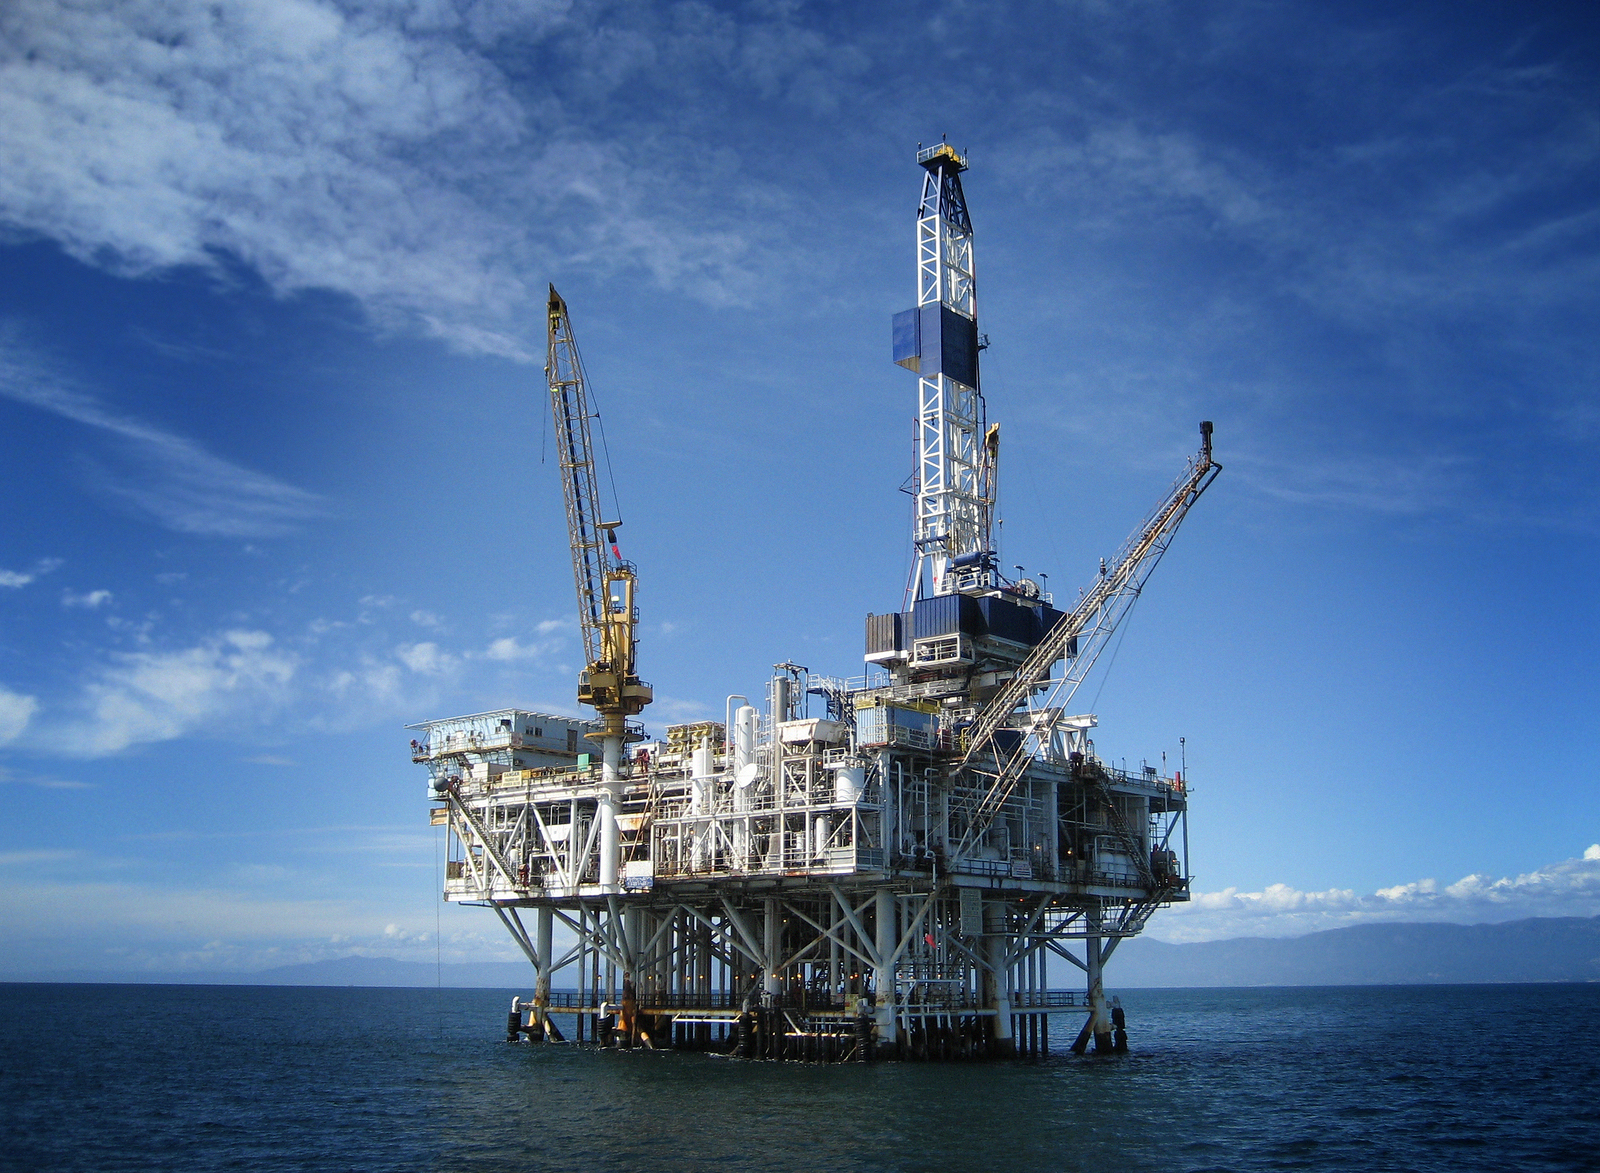 Photo of an offshore oil rig drilling platform